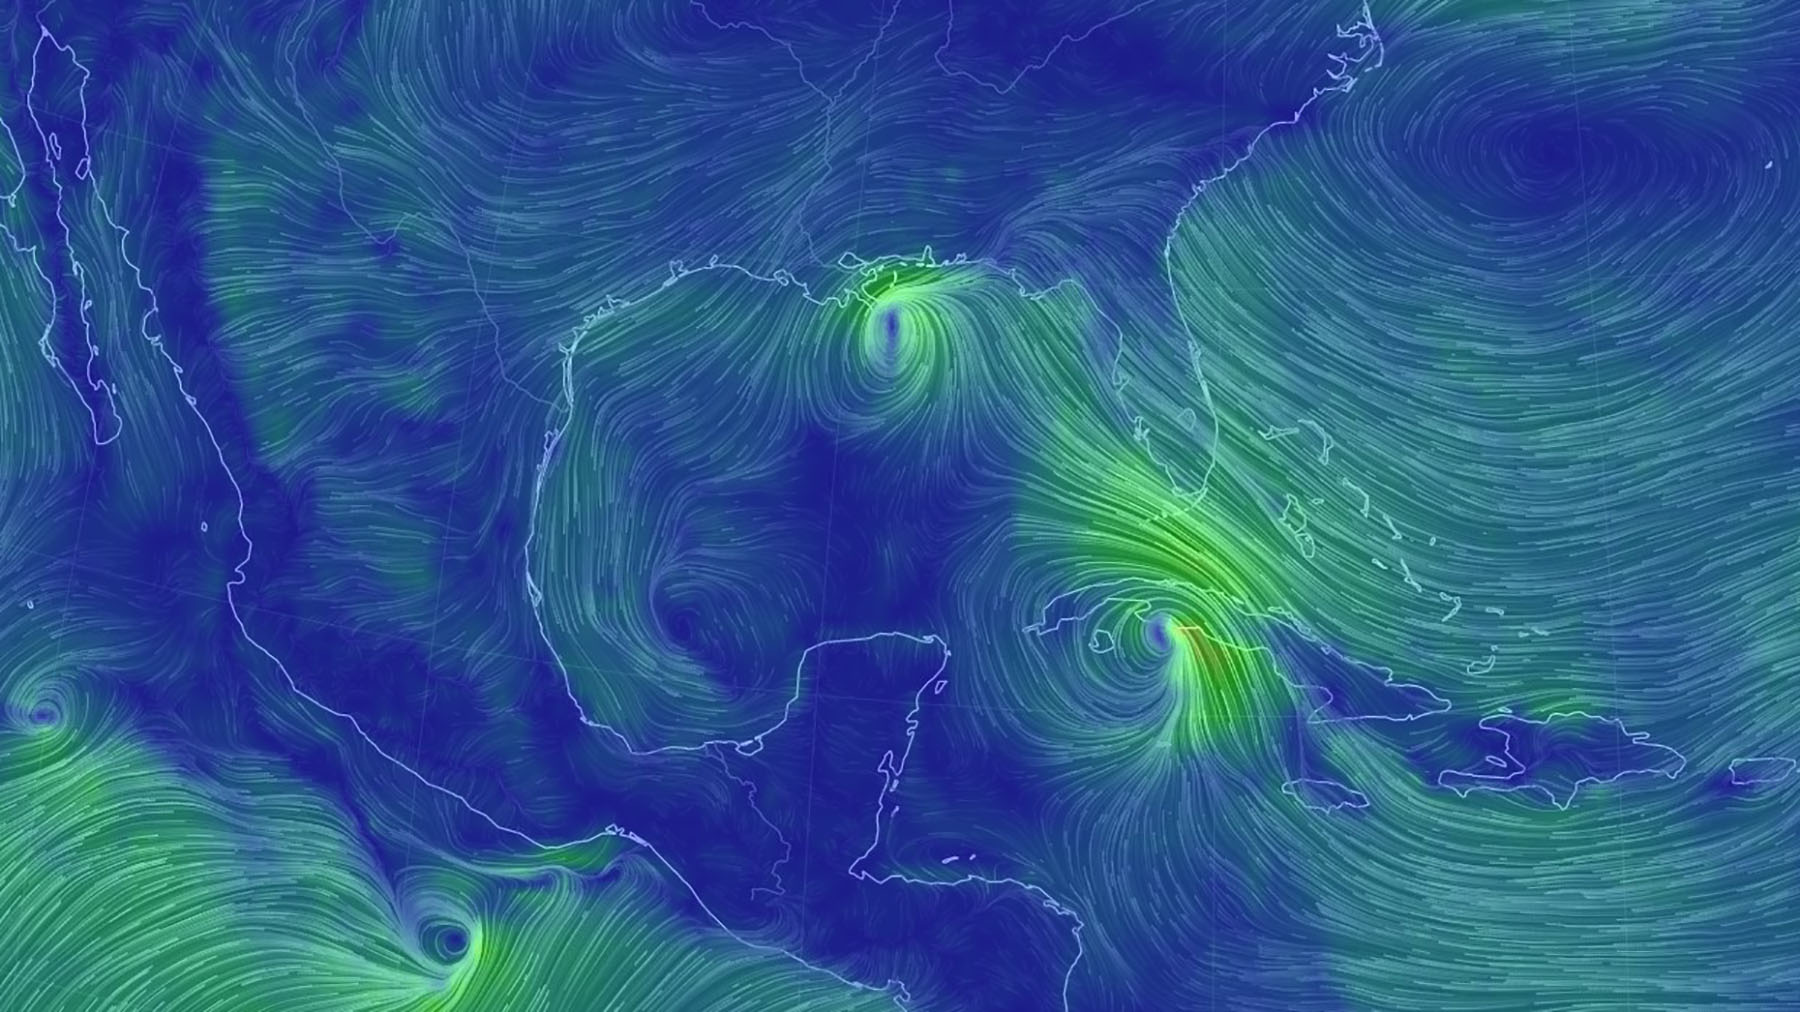 Tropical Storms Marco and Laura as seen via wind patterns forming over the ocean on Monday. (Earthnull Imagery)